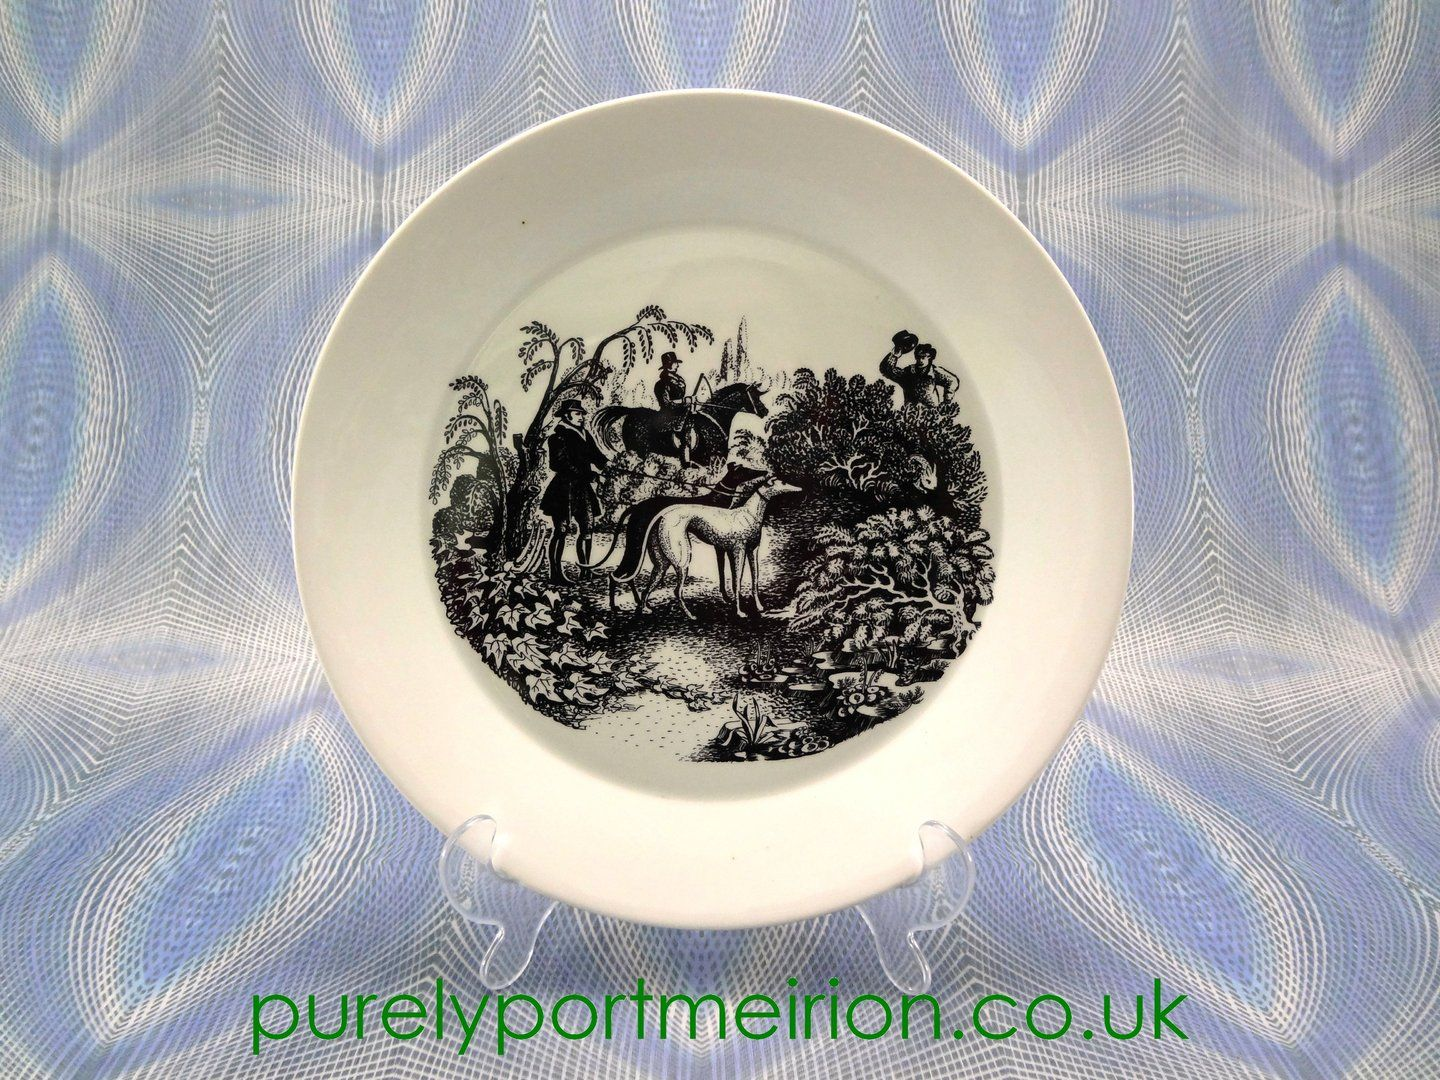 A Vintage Portmeirion Dinner Plate In White In The Sporting Scenes Design. Buy From Purely Portmeirion. & Portmeirion Sporting Scenes 10 Inch Dinner Plate | Portmeirion ...